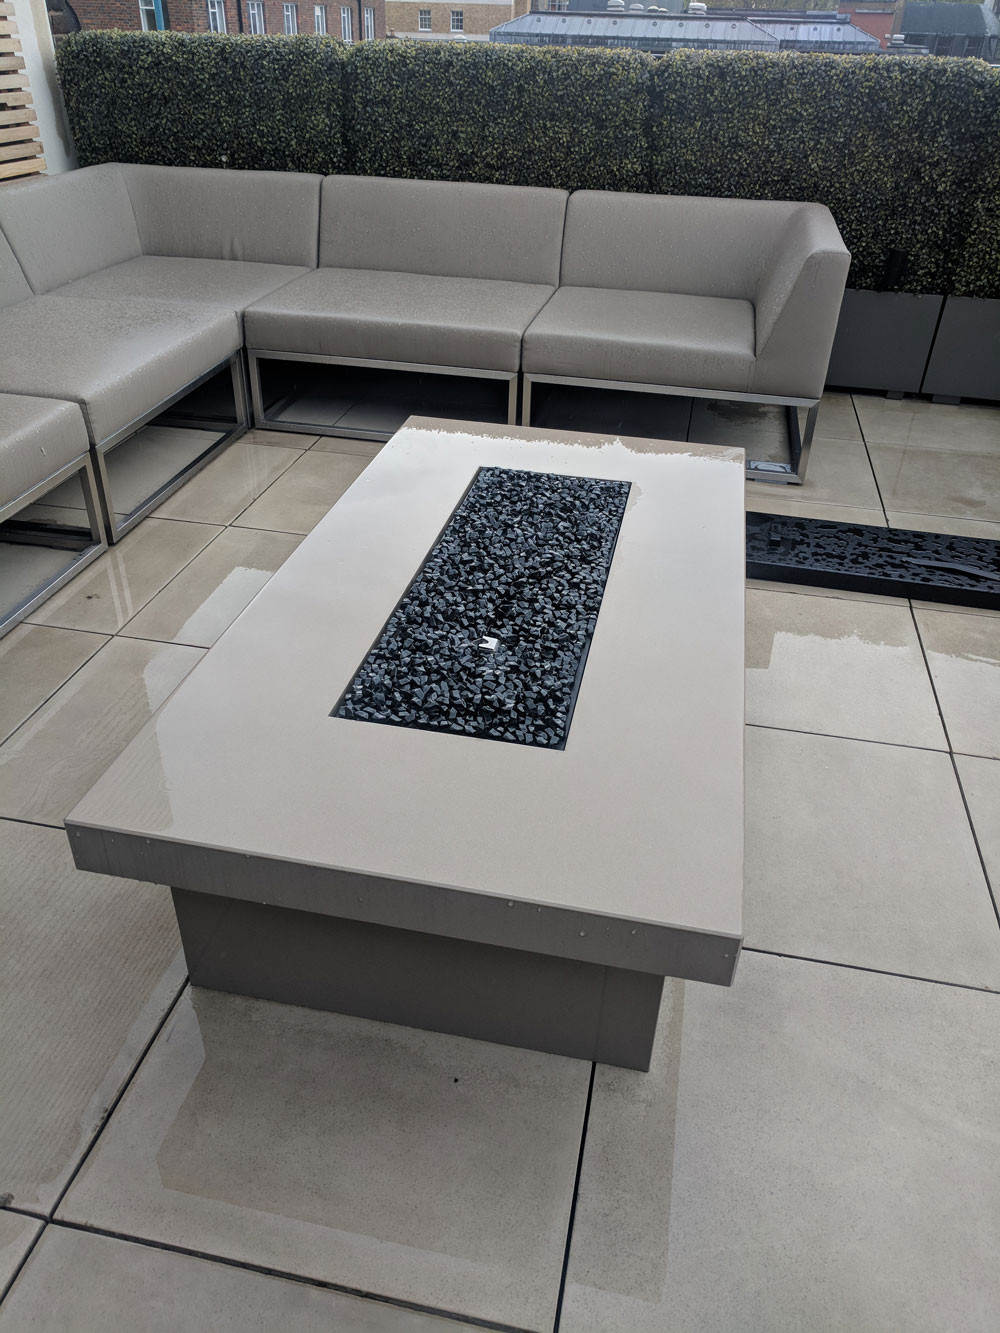 Urban Fires firetable in polished stone